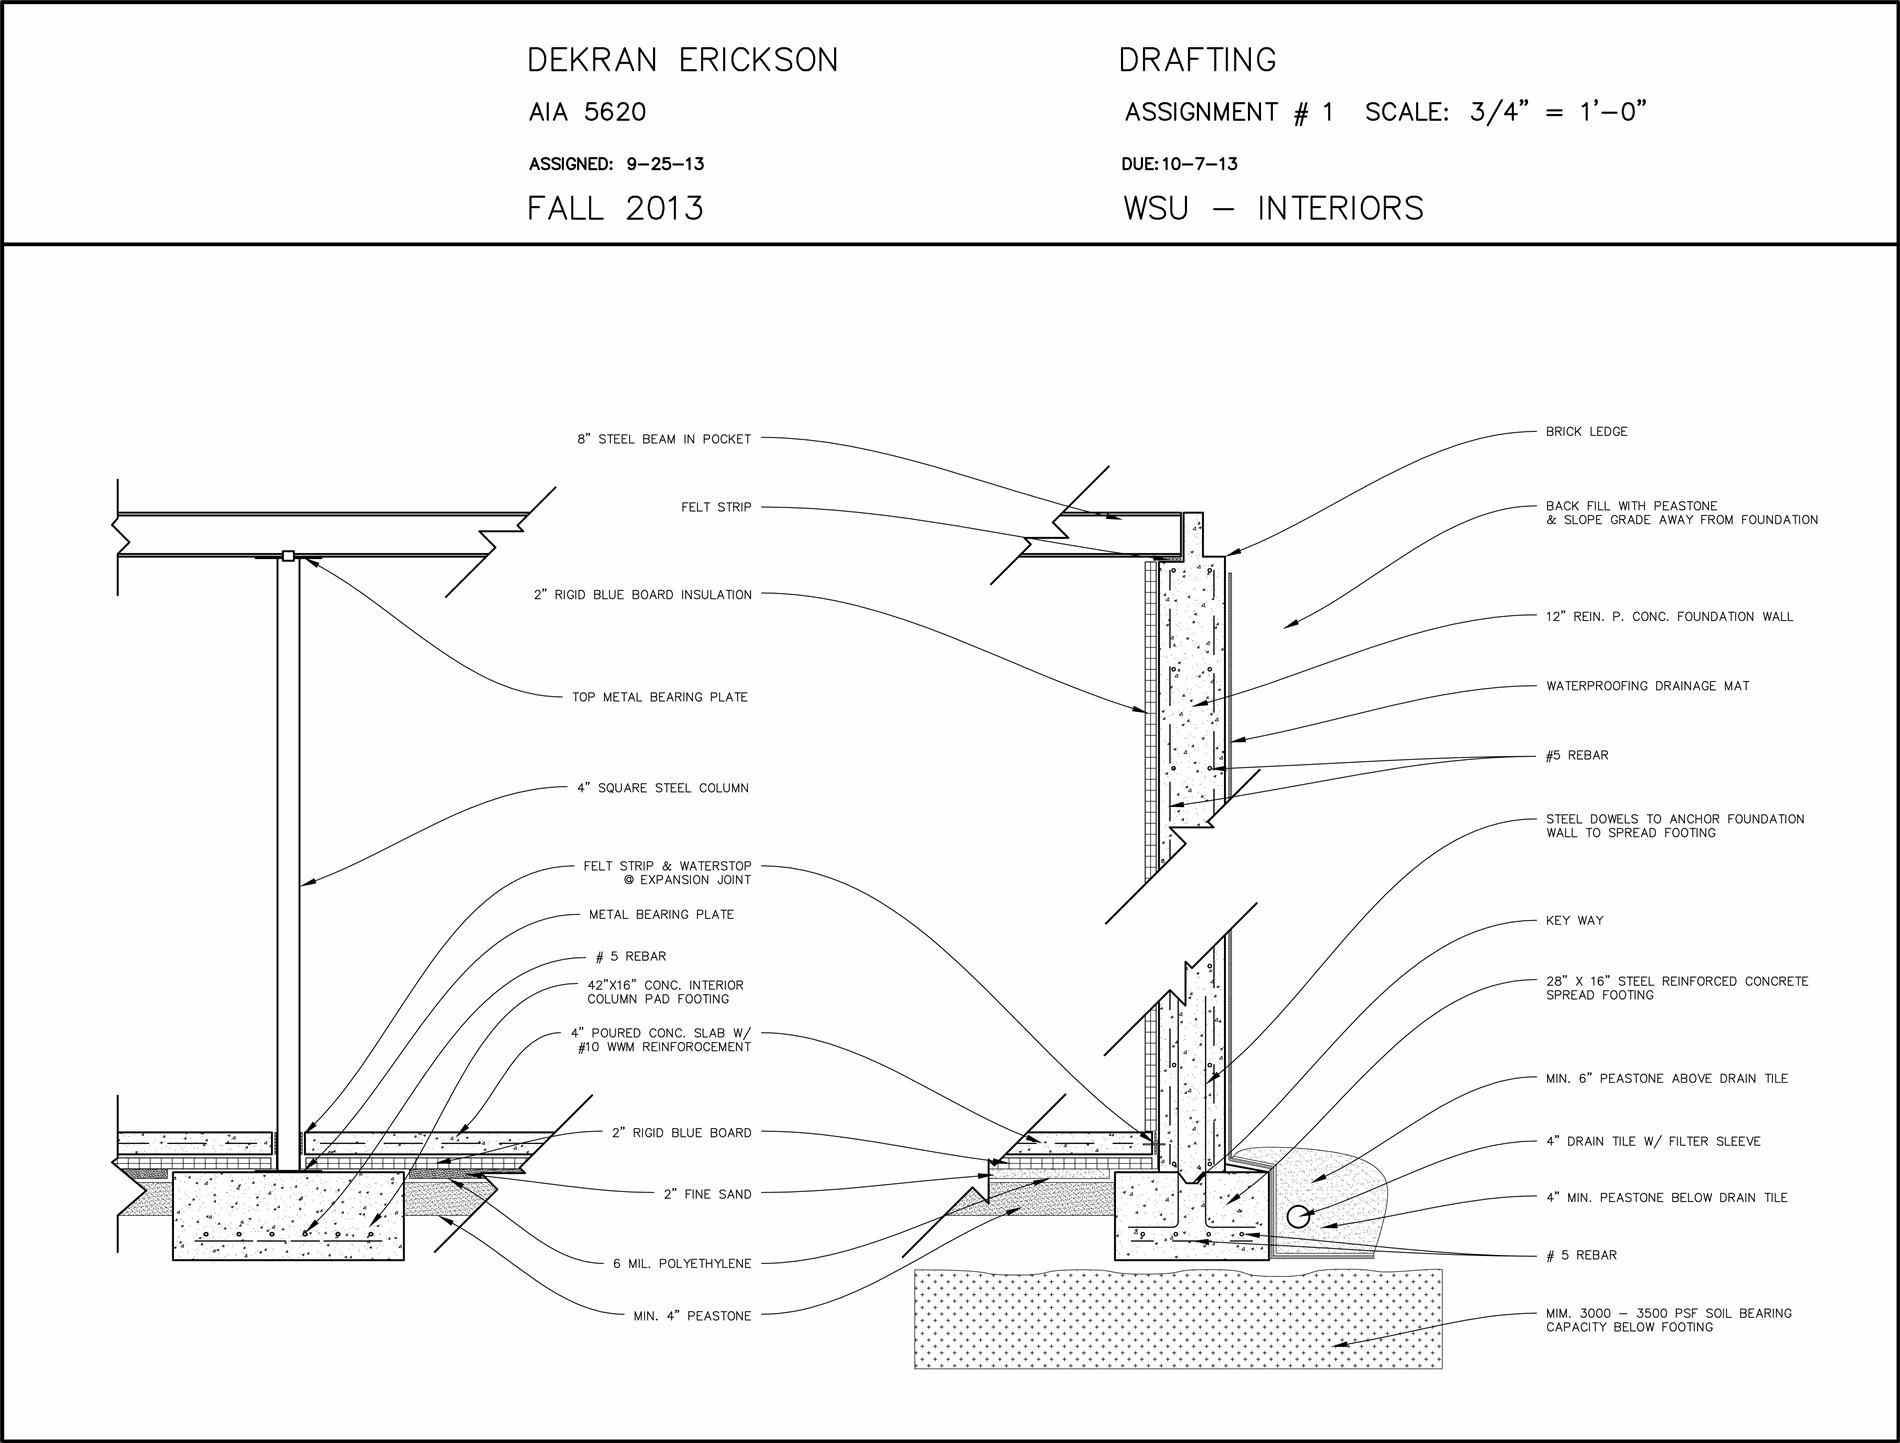 1900x1443 Roof Drawing For Aia At Wayne State Univ My Detail S Detail Flat